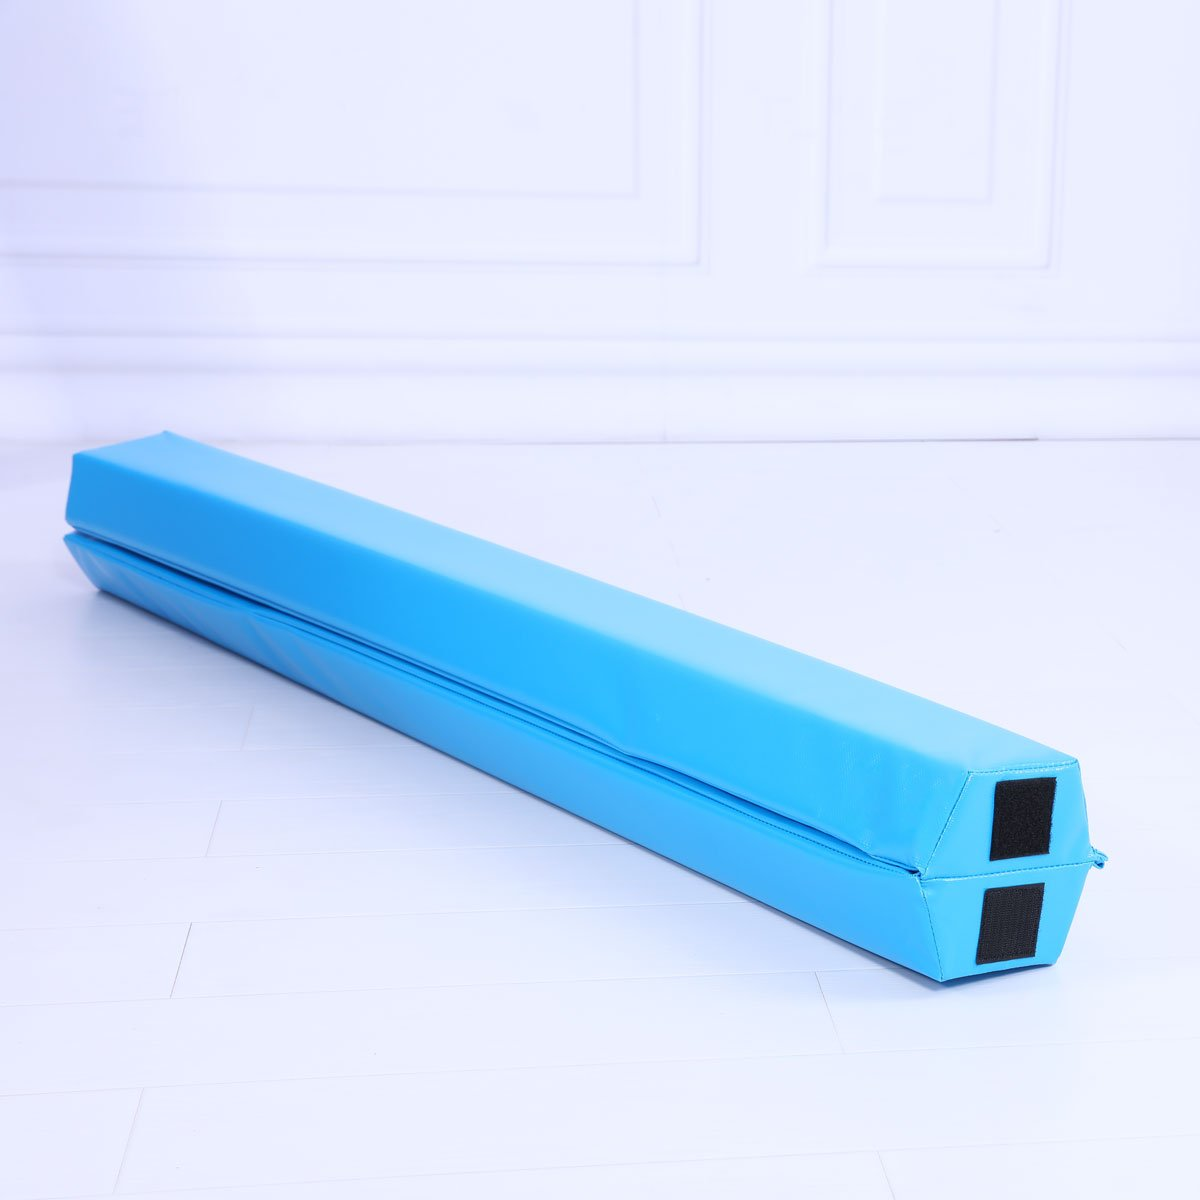 Starter Folding Gymnastics Balance Beam Practice Safe Balance Beam for Kids 240cm/270cm - Blue